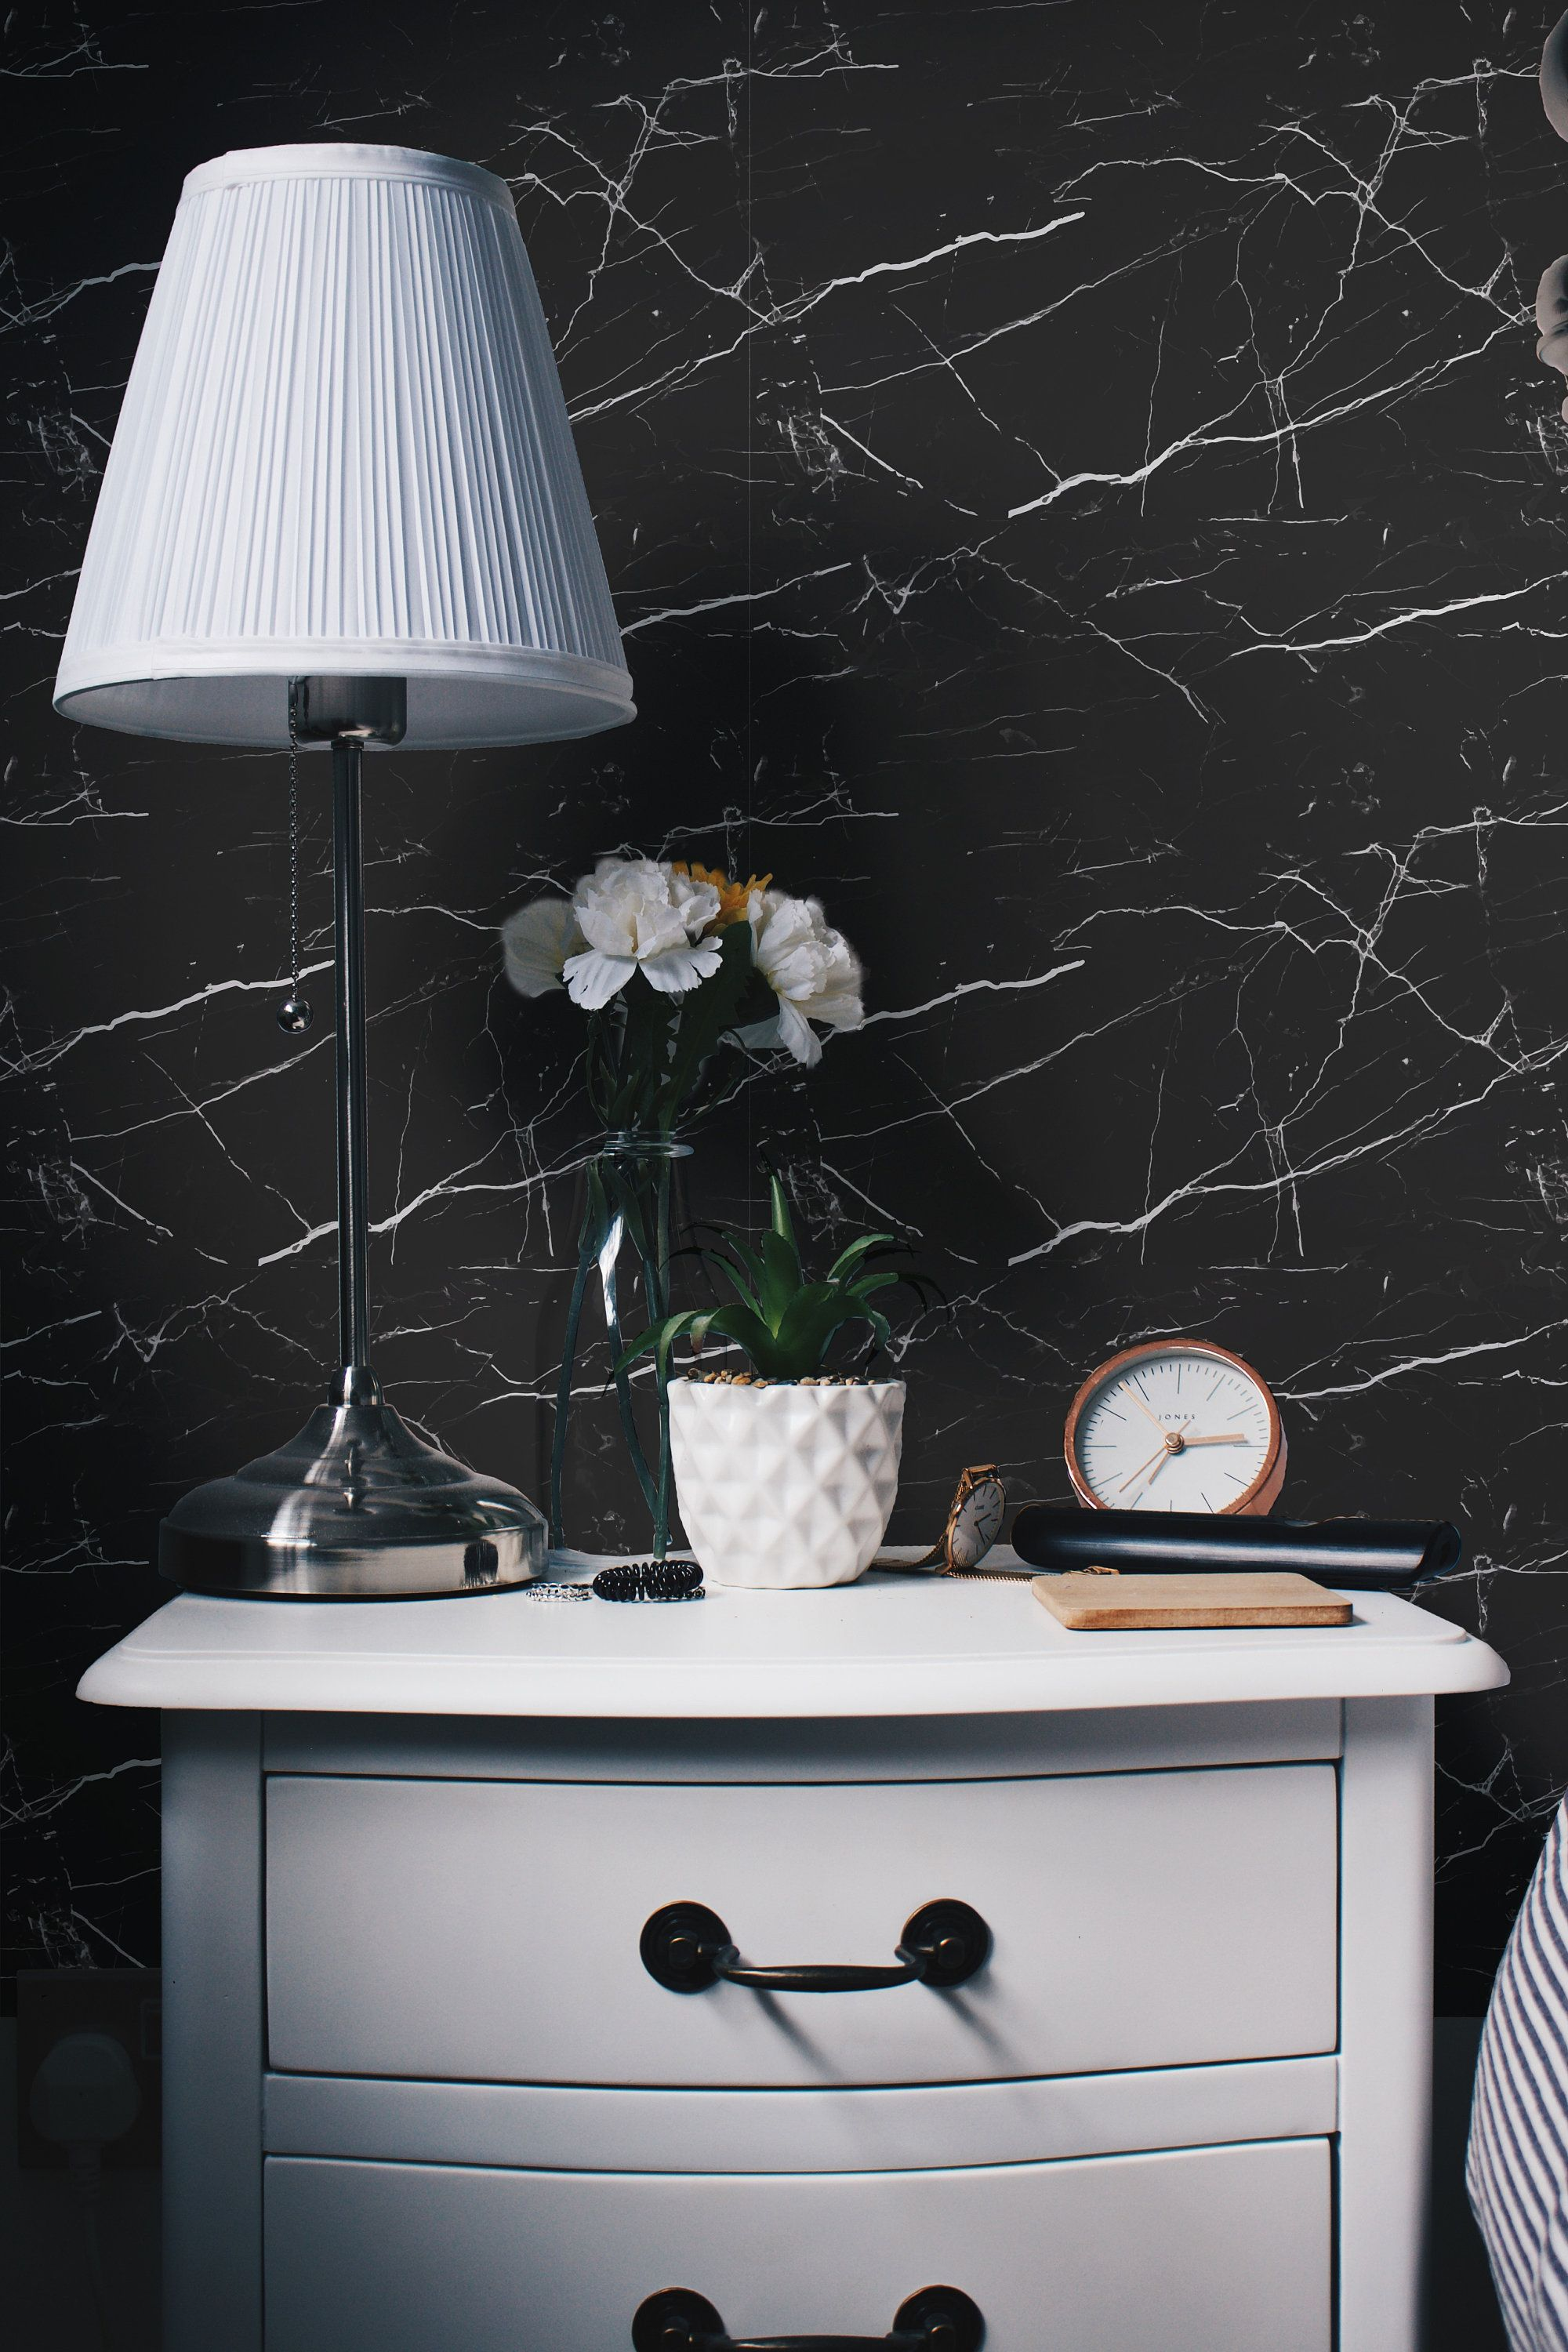 Black Marble Self Adhesive Wallpaper Black And White Marble Etsy Marble Wall Mural Stone Wallpaper Marble Wall